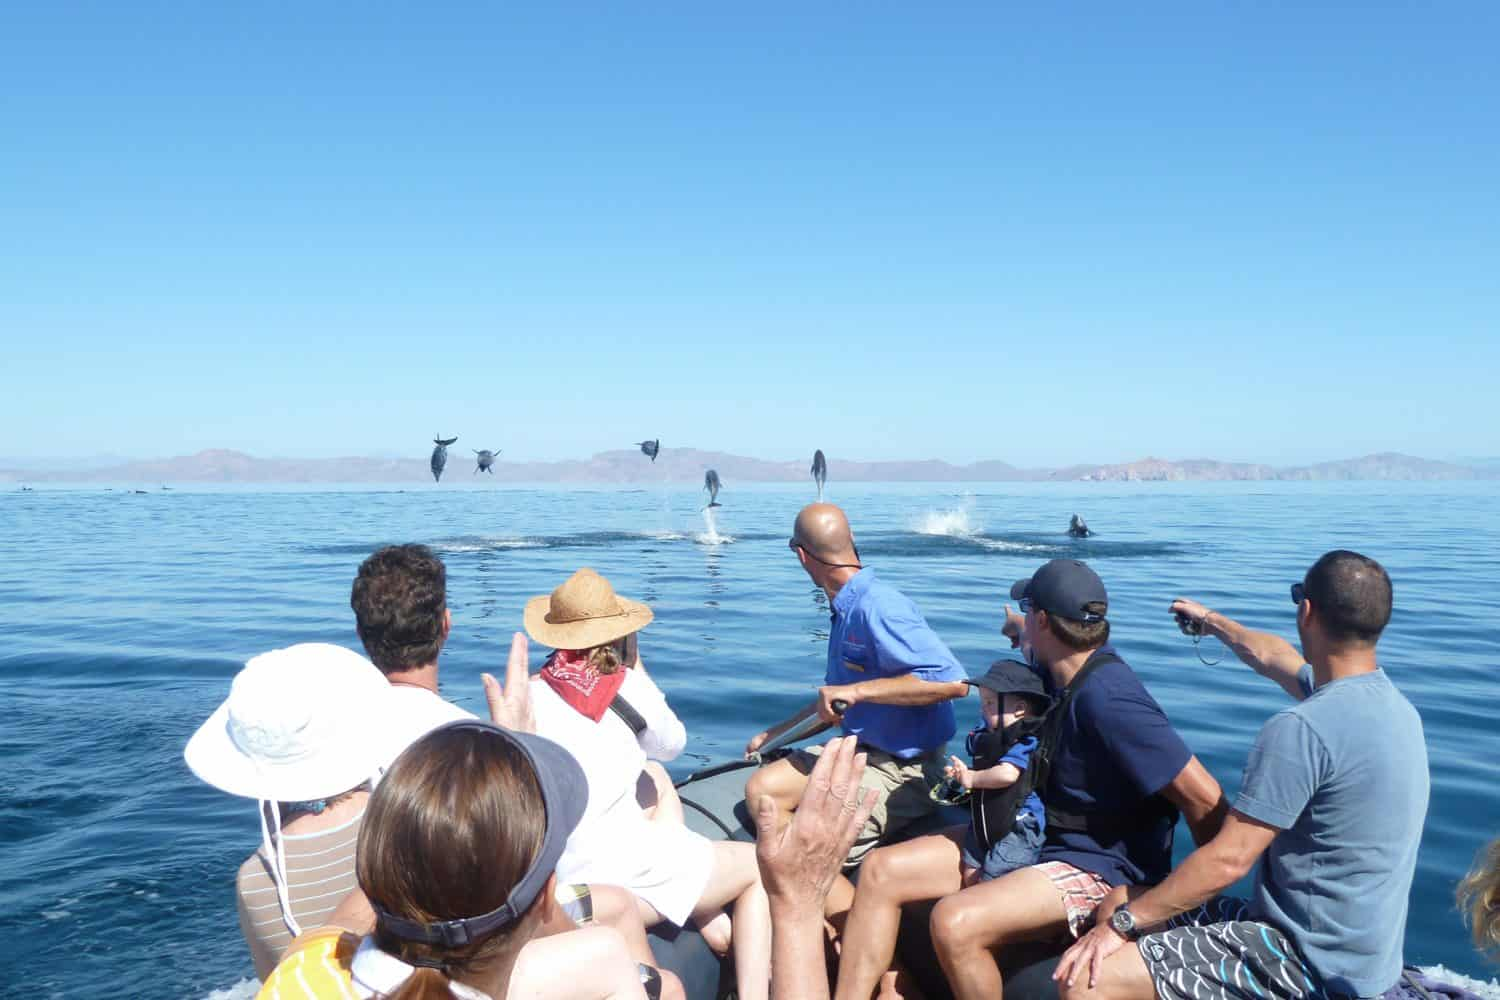 UnCruise in the Sea of Cortez - Dolphins from a skiff